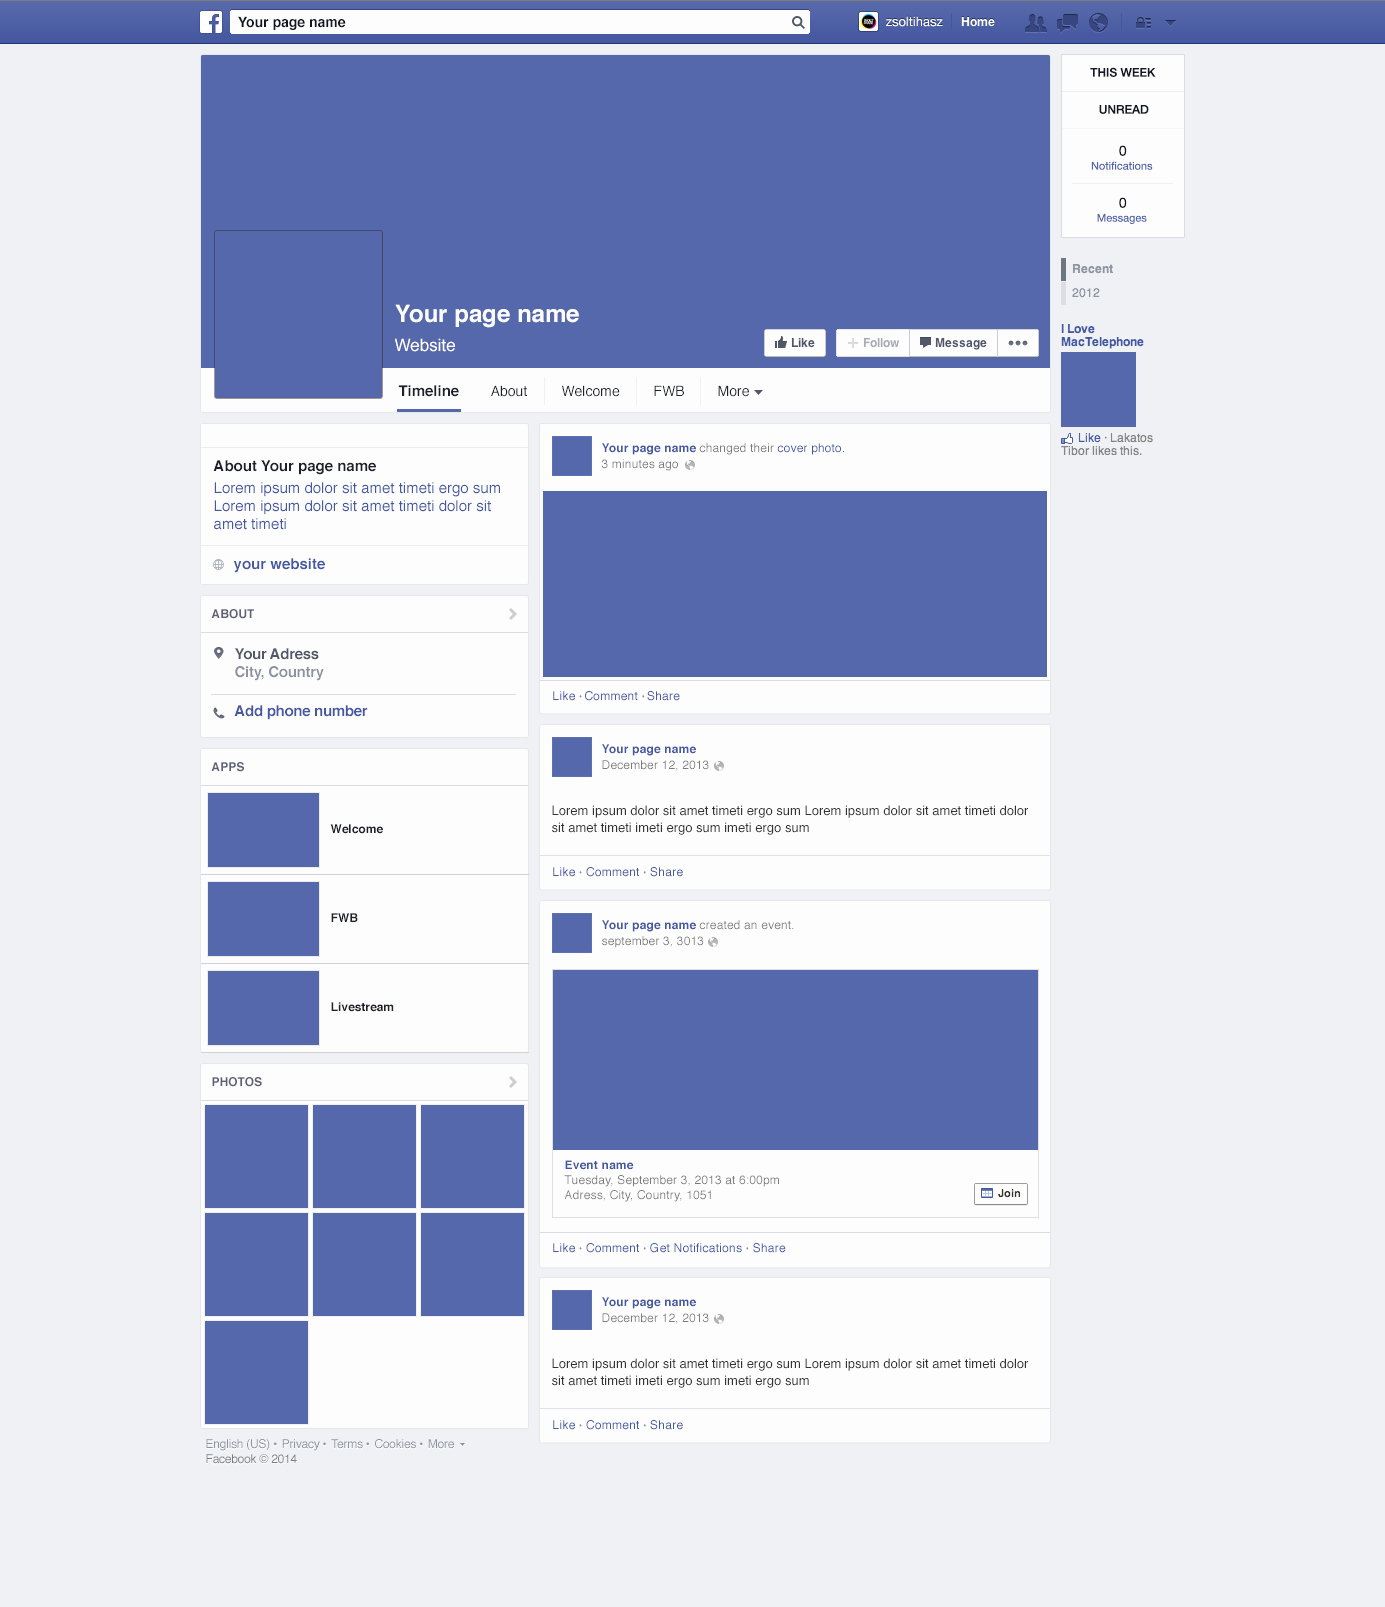 Facebook Profile Page Template Best Of Page Redesign 2014 Mockup Psd Download Download Psd